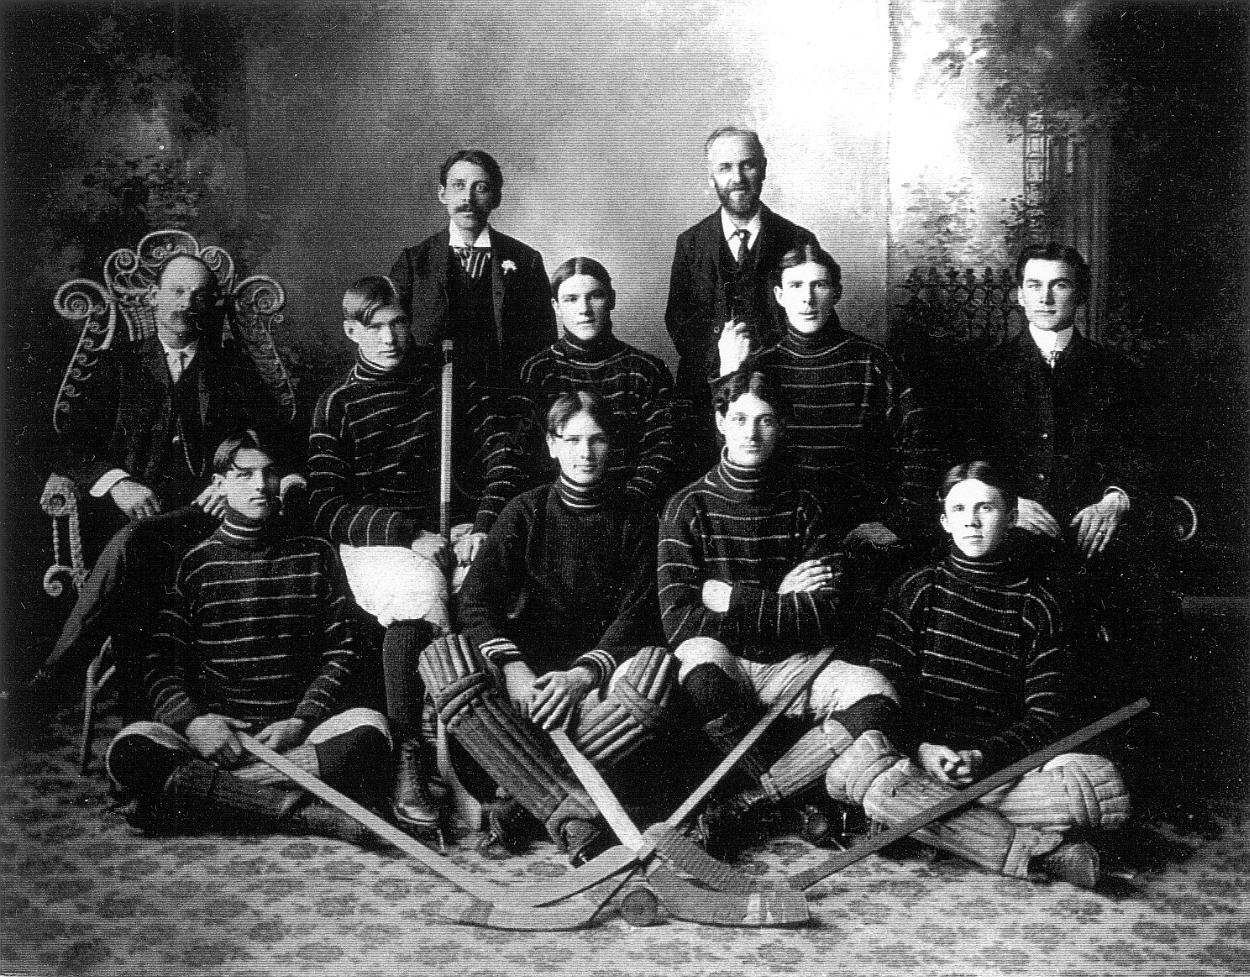 Photograph of a men's hockey team, 1903-1904, Merrickville, Ontario, Canada